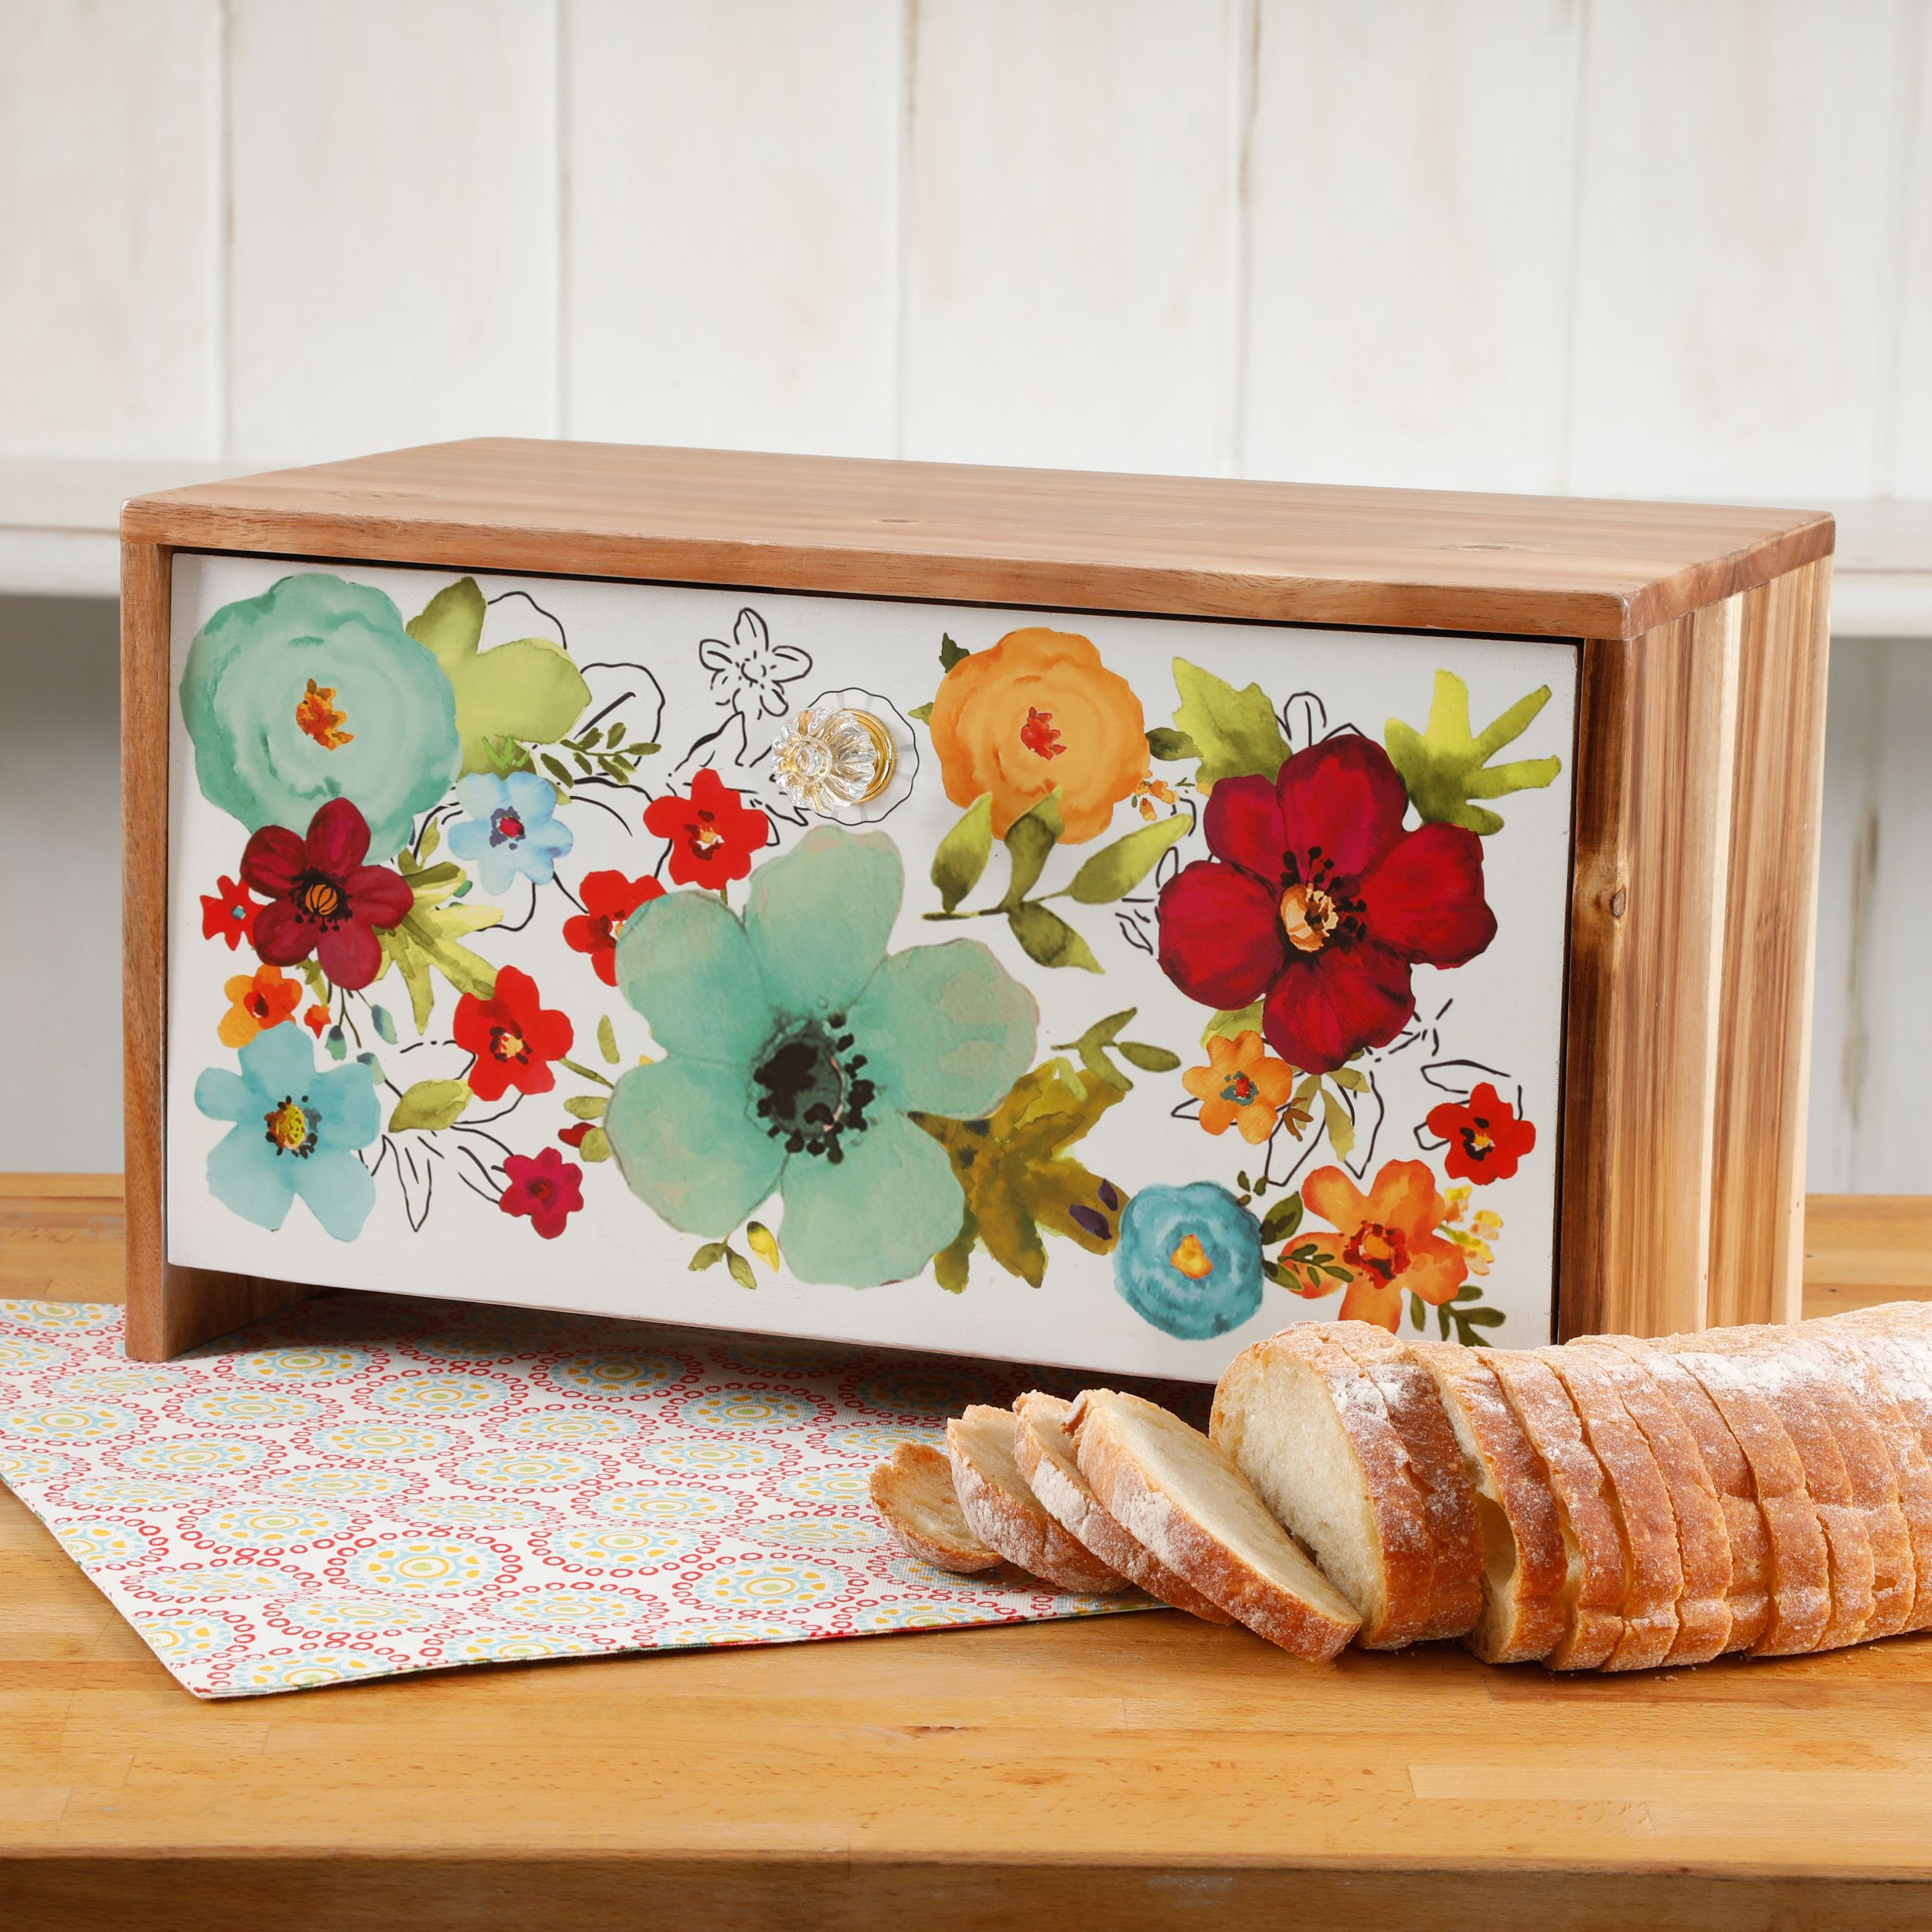 12 Home Decor Gift Ideas From Walmart: Pin By Crafty McDaniel On CM Pioneer Woman Inspiration